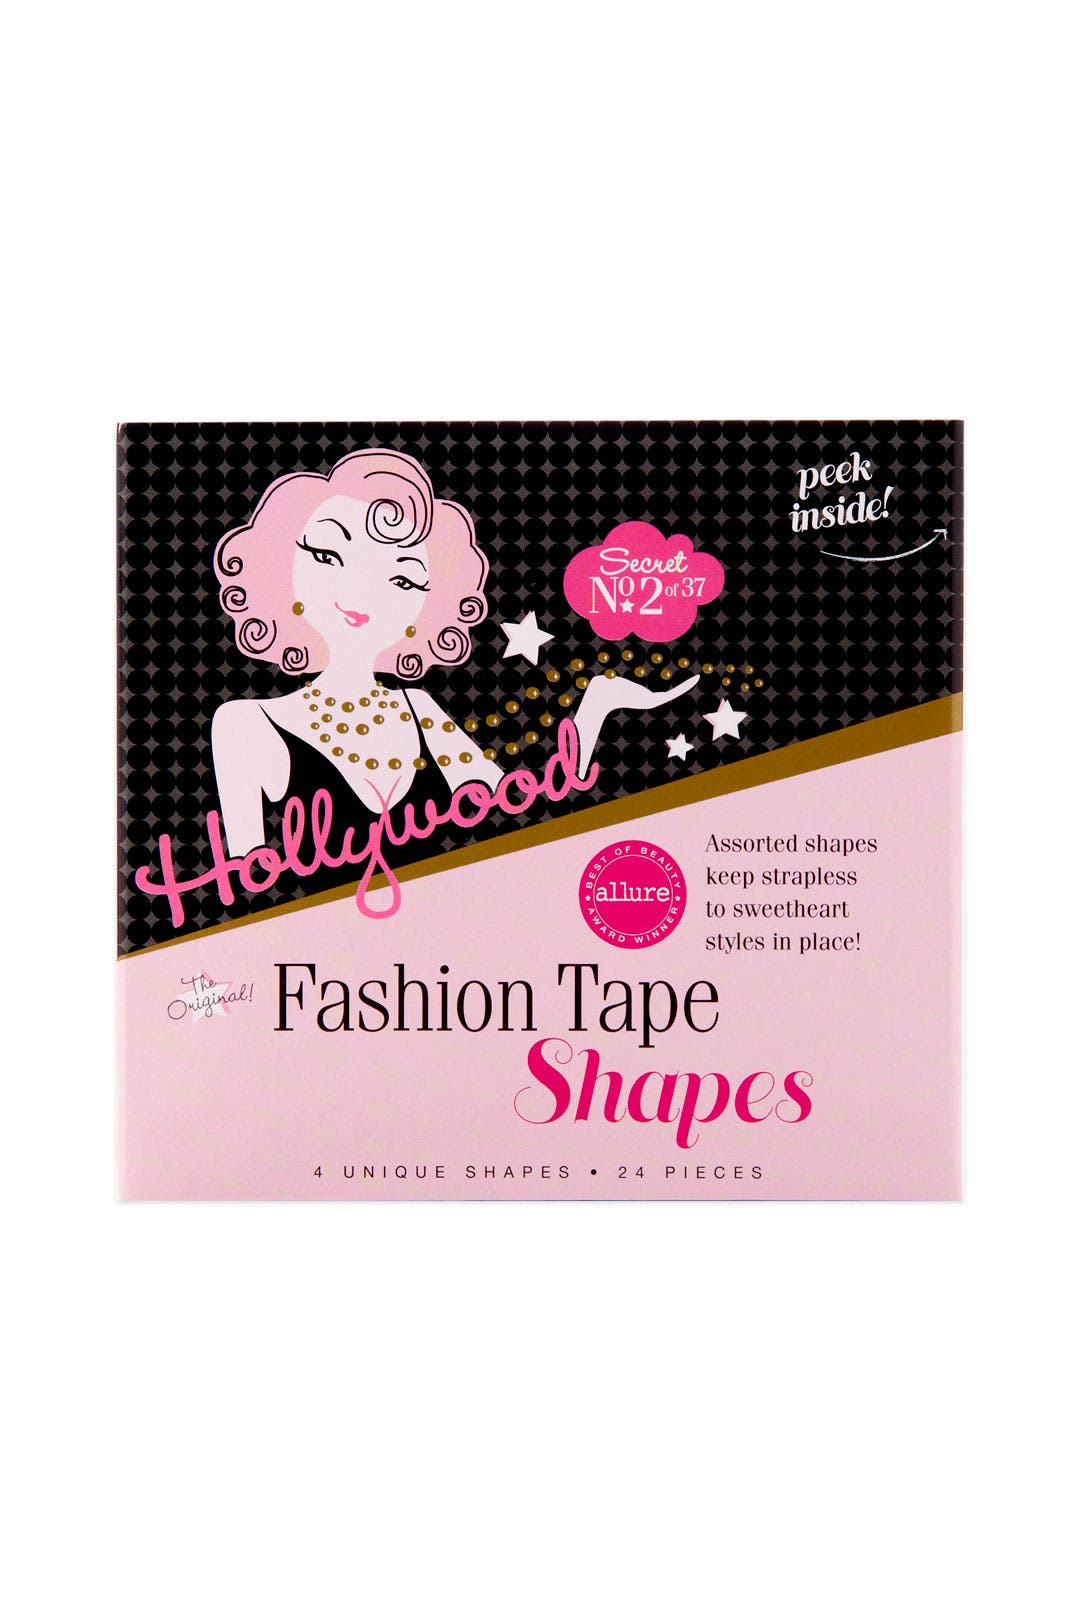 Fashion Tape Shapes by Hollywood Fashion Tape